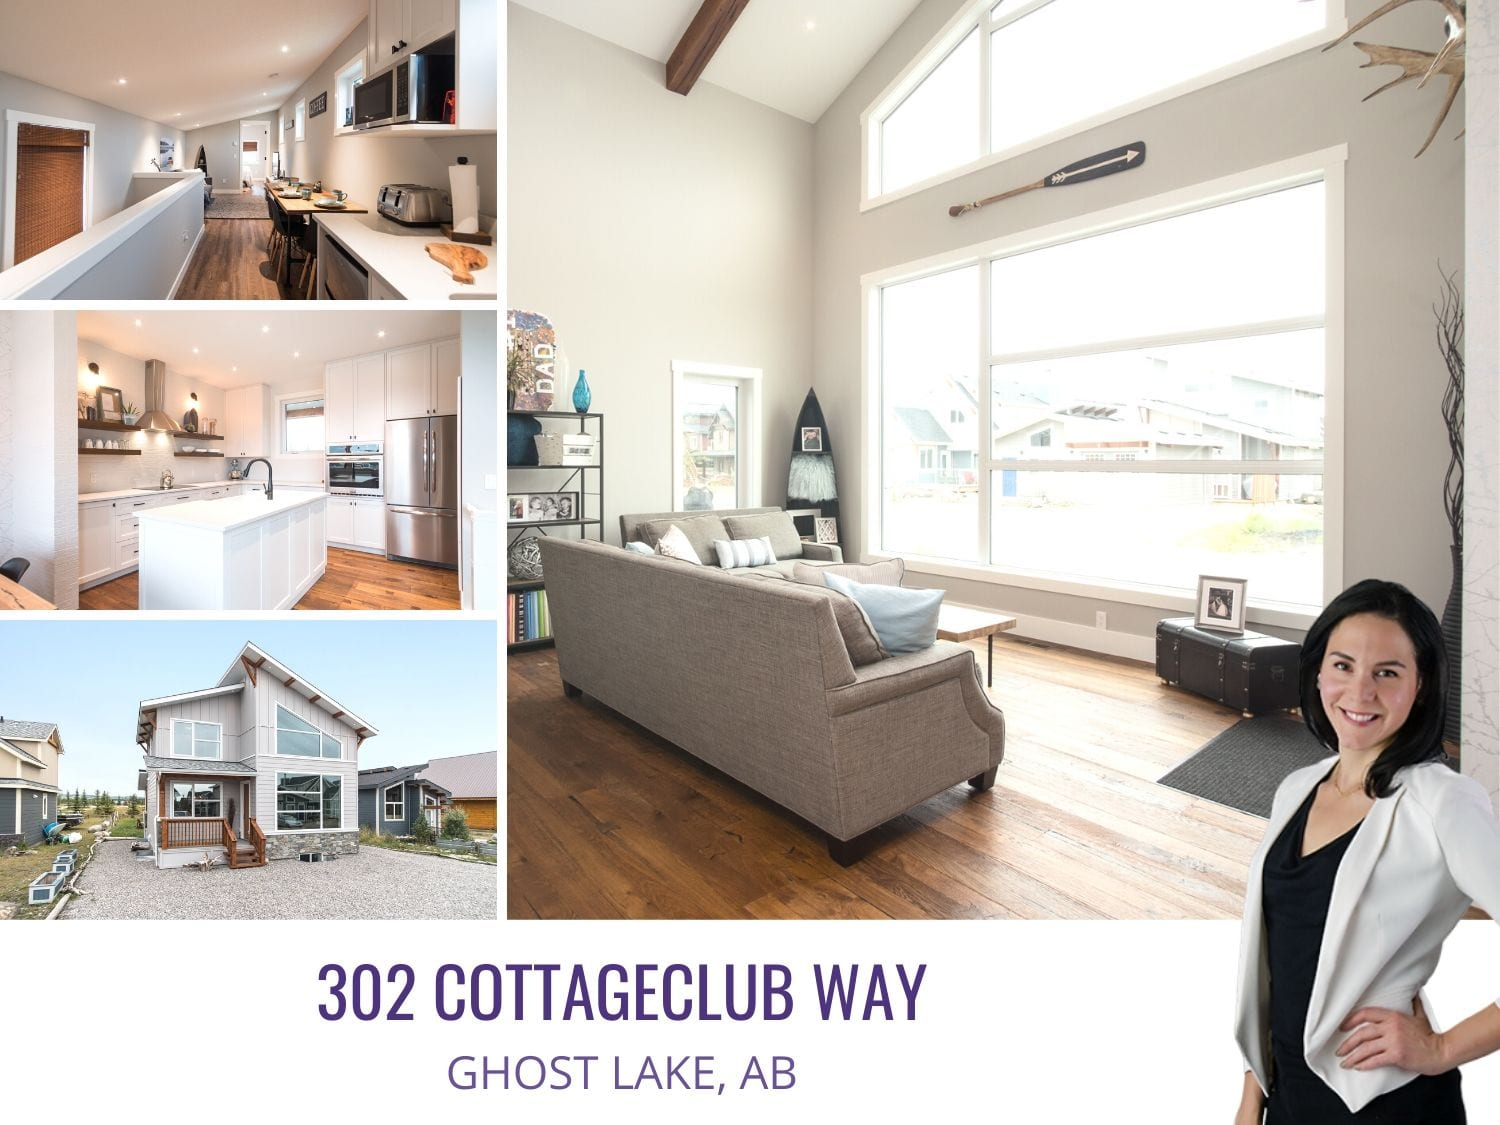 302 Cottageclub Way